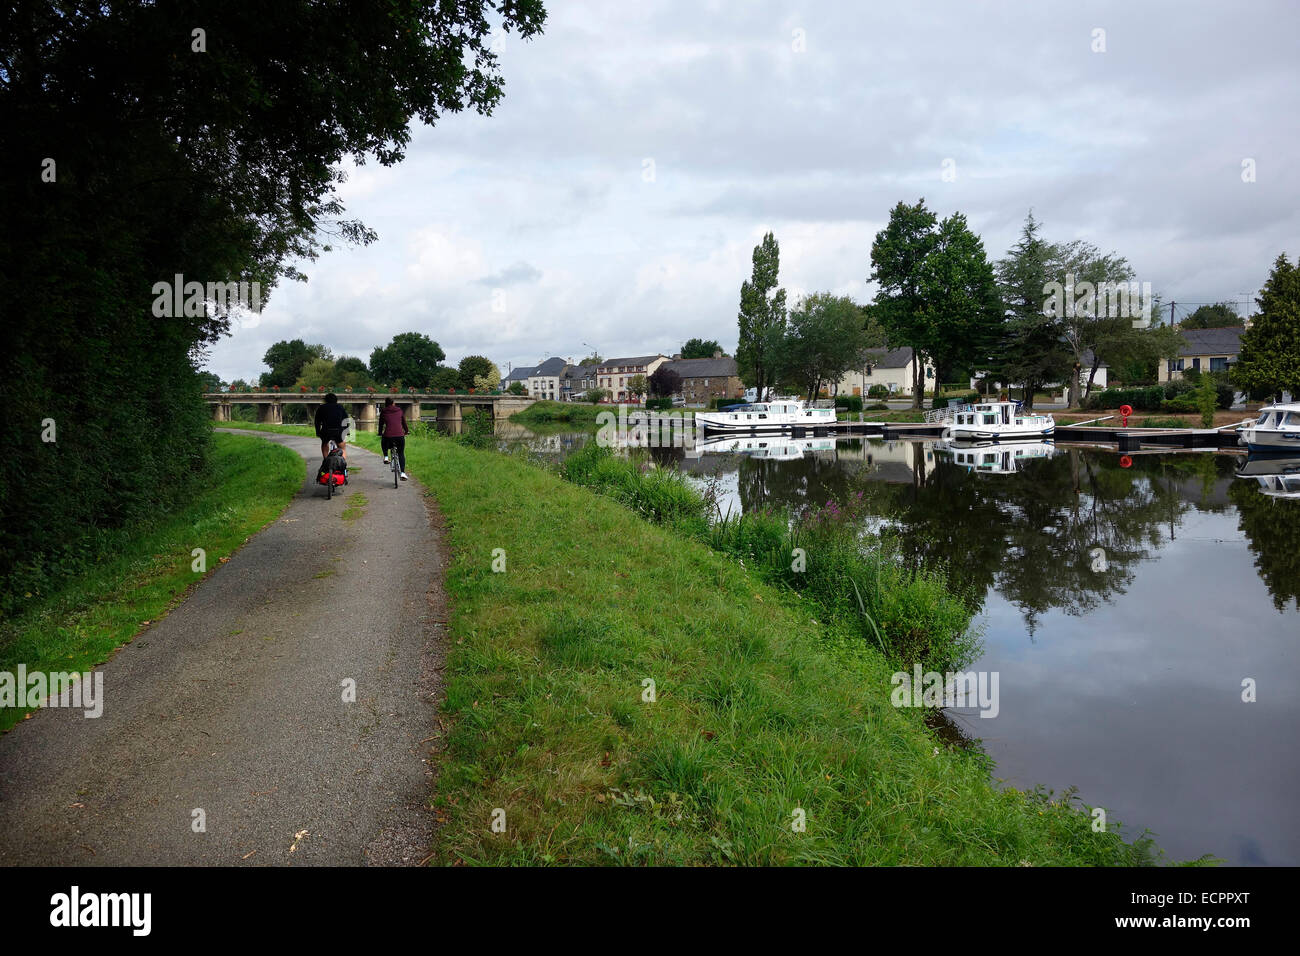 St Martin on the Nantes Brest Canal cycling - Stock Image